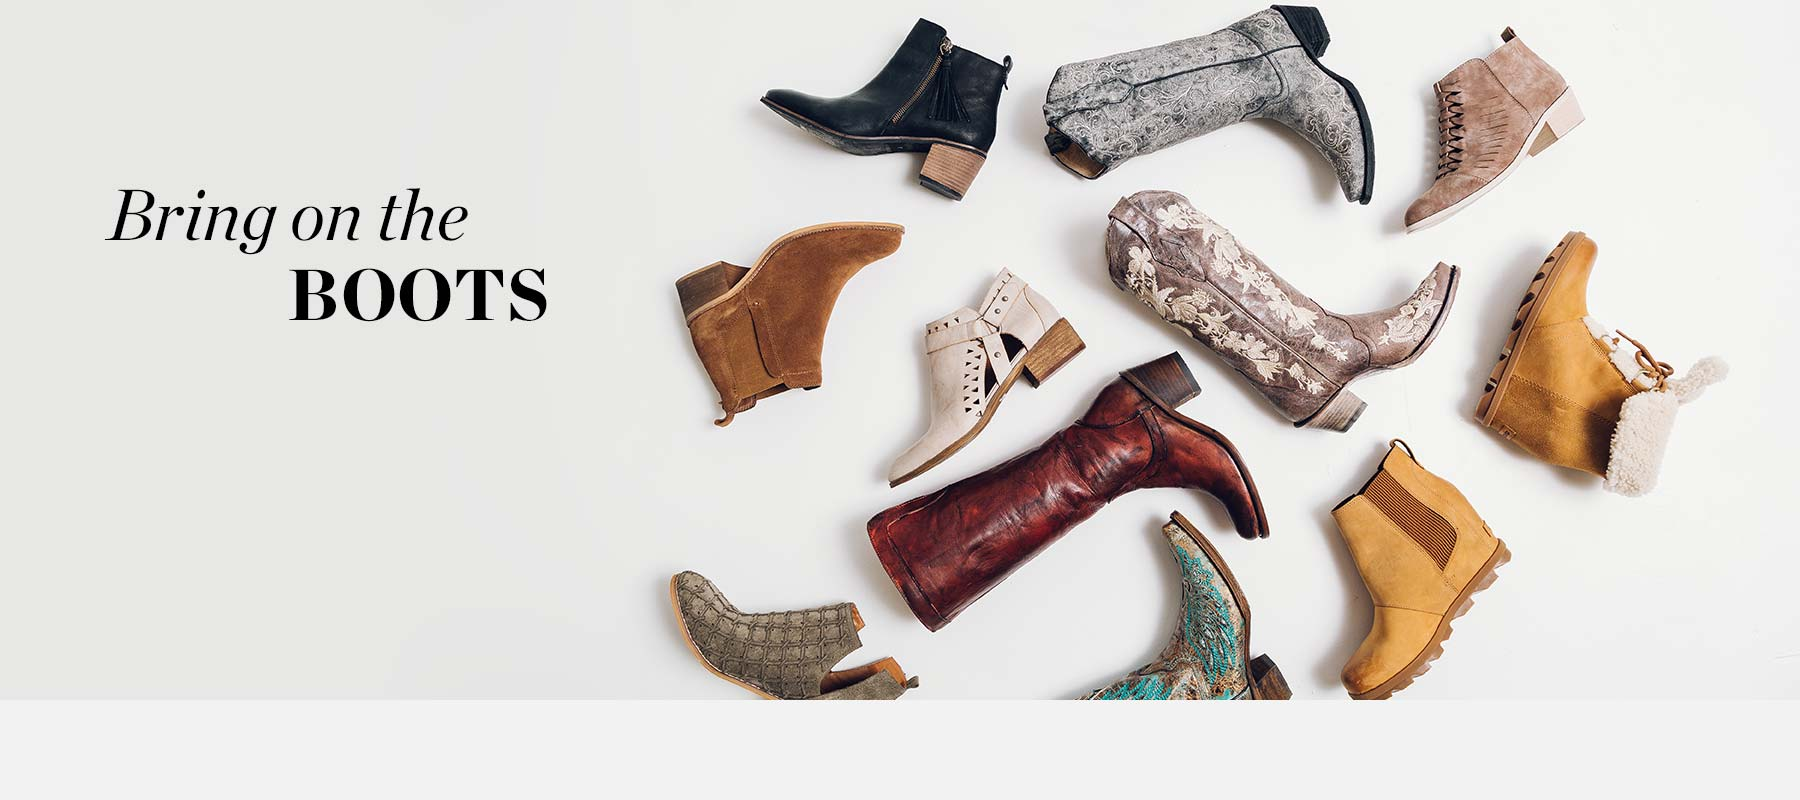 Bring on the Boots - A variety of women's boots scattered on the floor